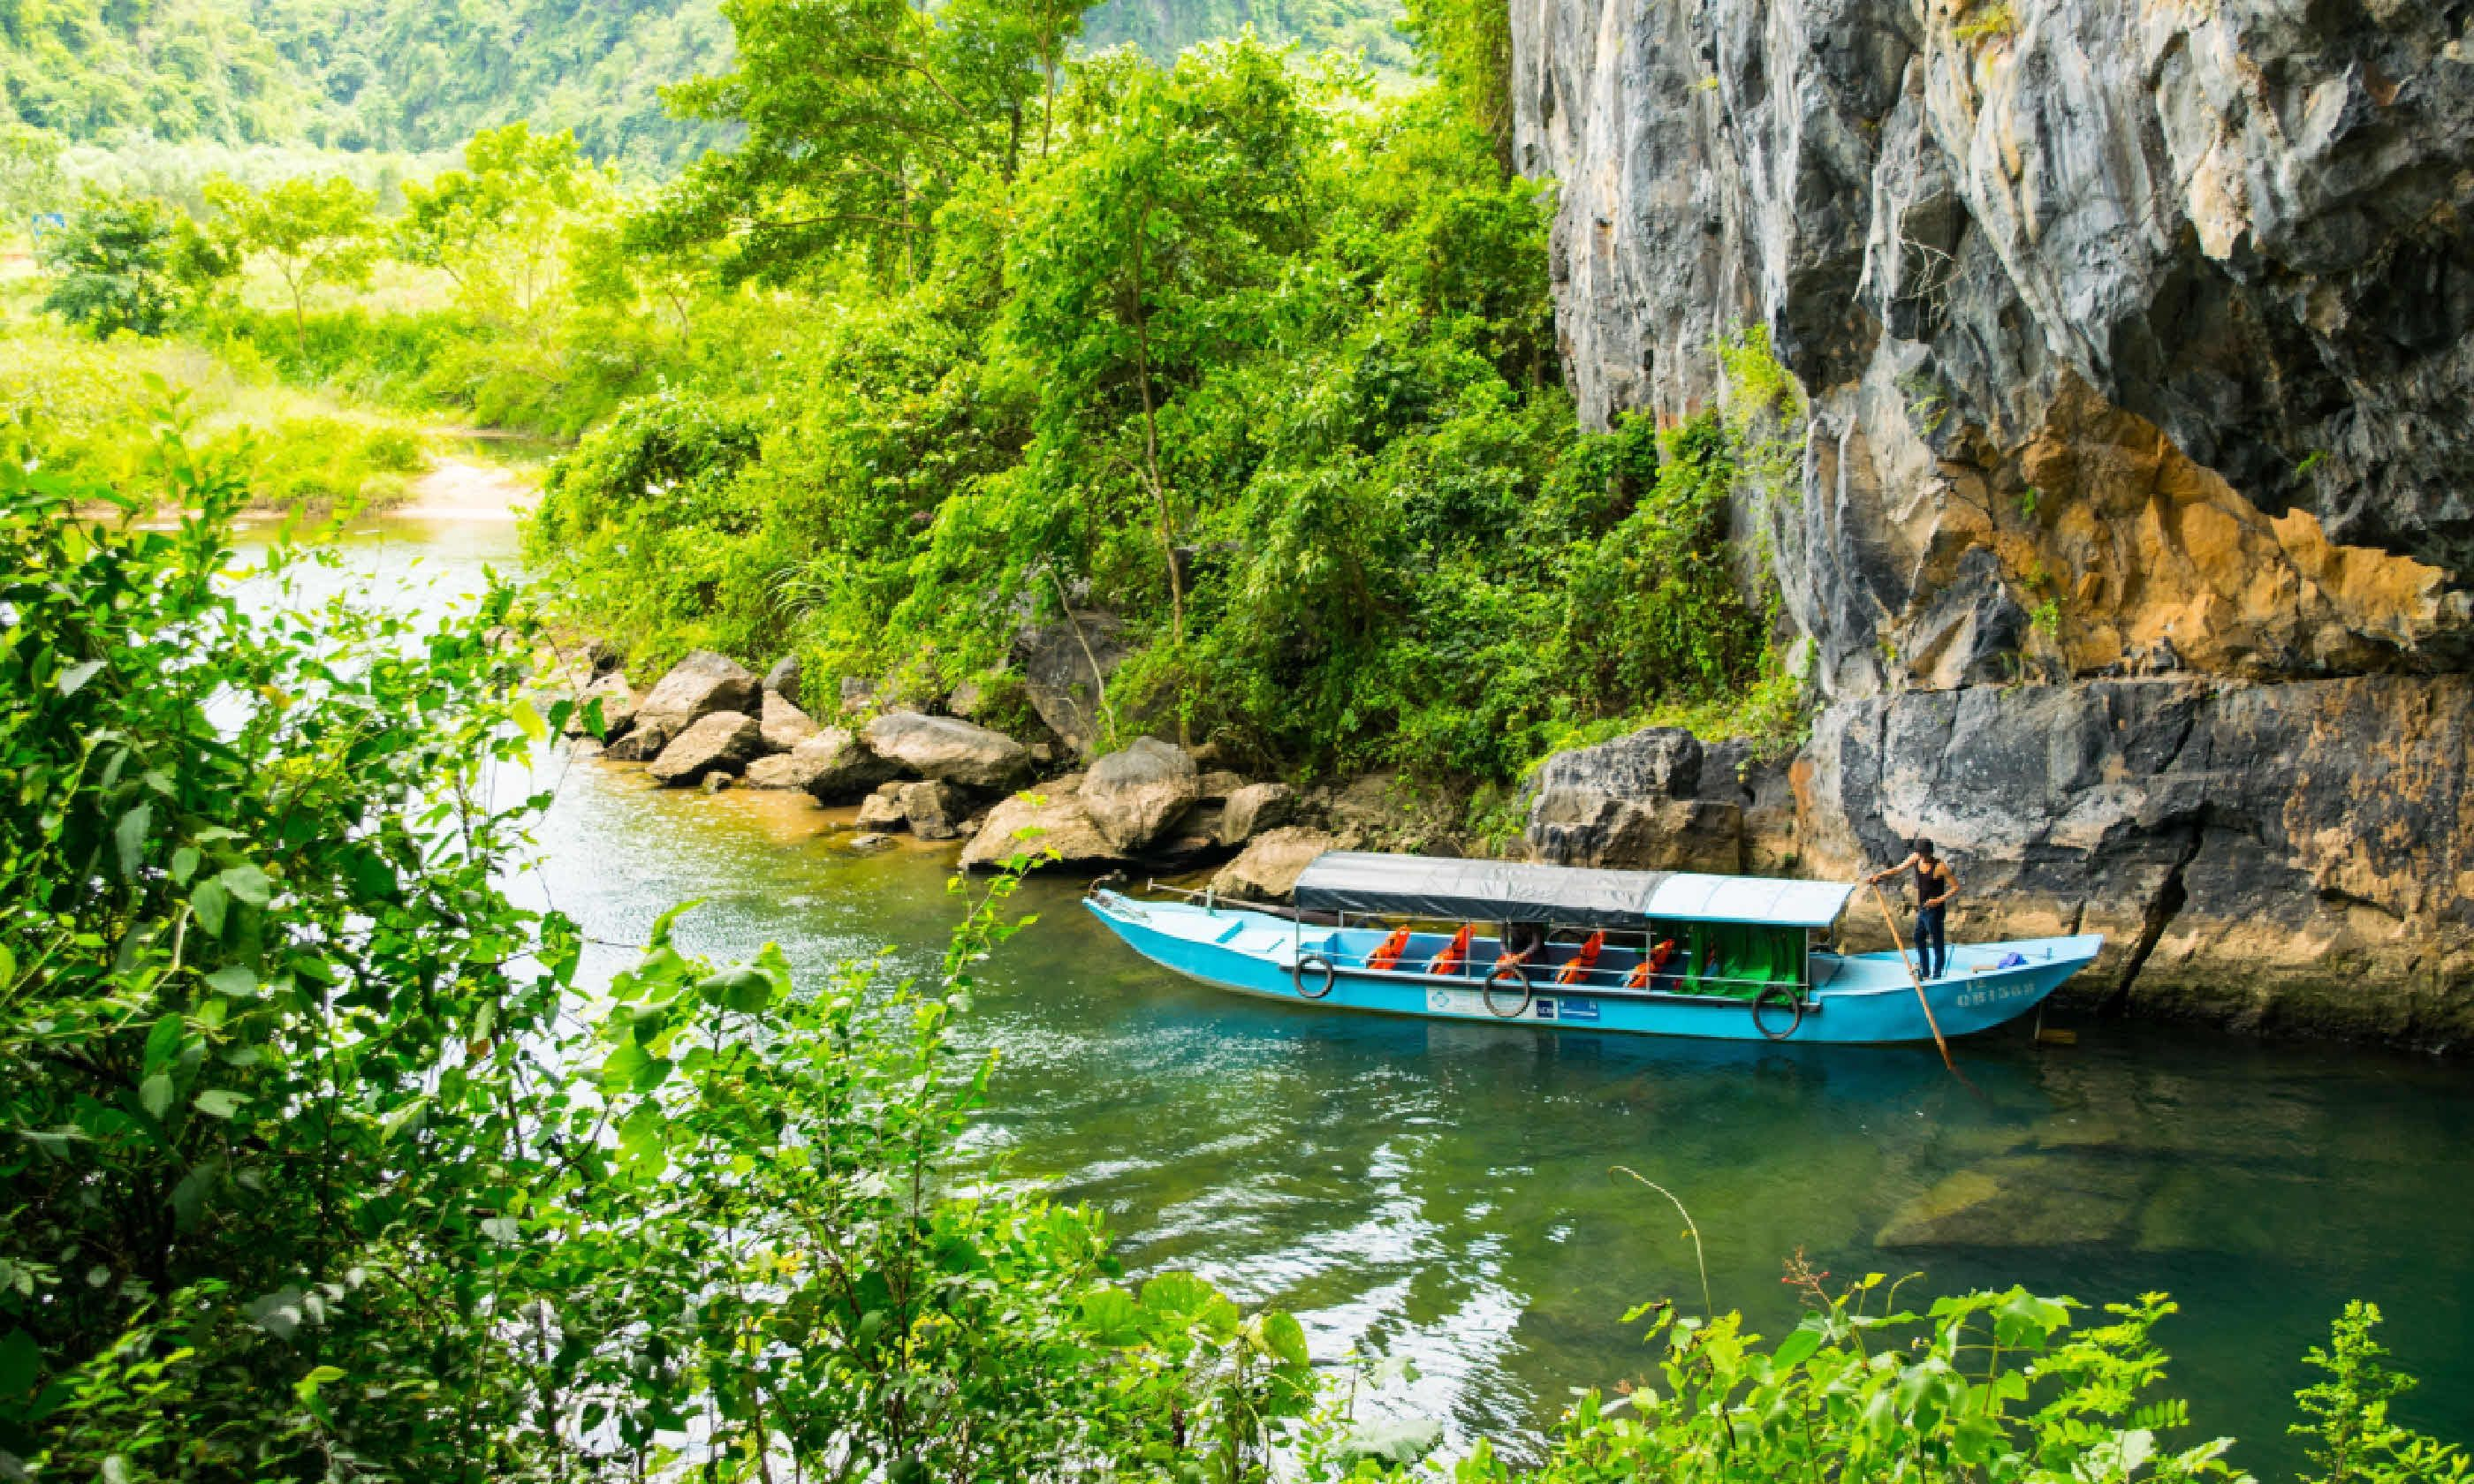 Tourist boats, the mouth of Phong Nha cave with underground river (Dreamstime)